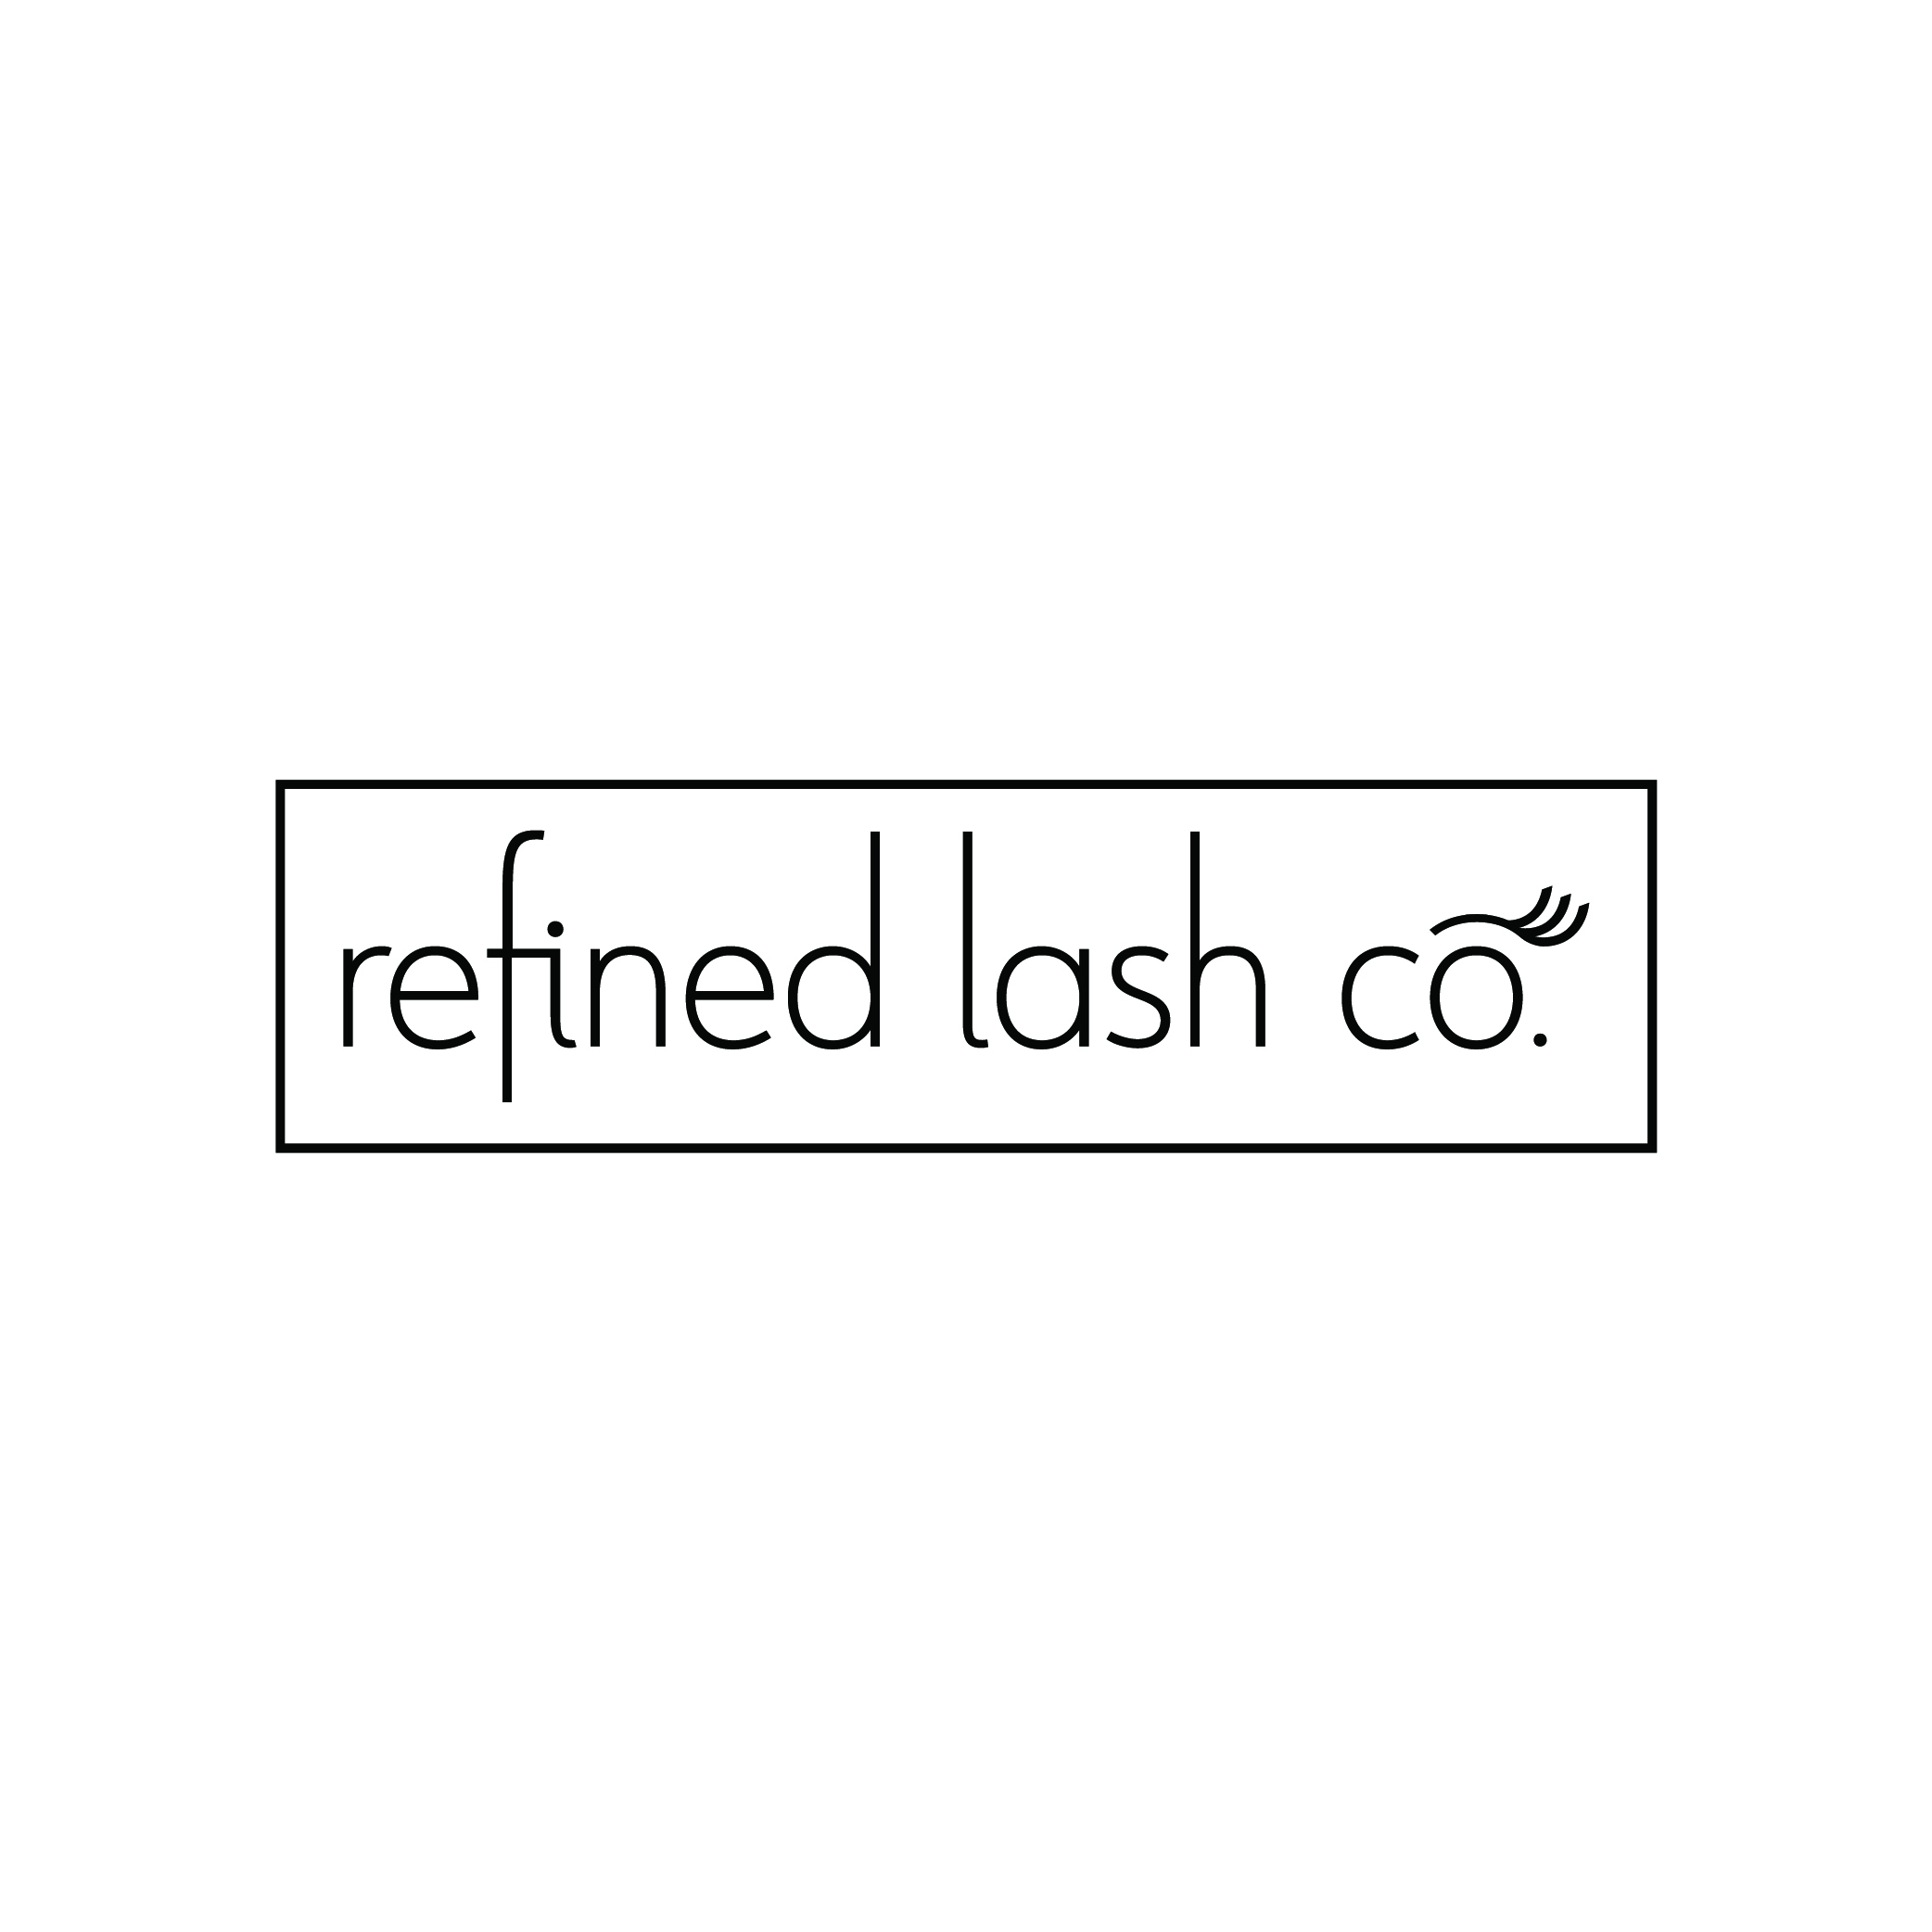 Refined Lash Co. - Full Logo